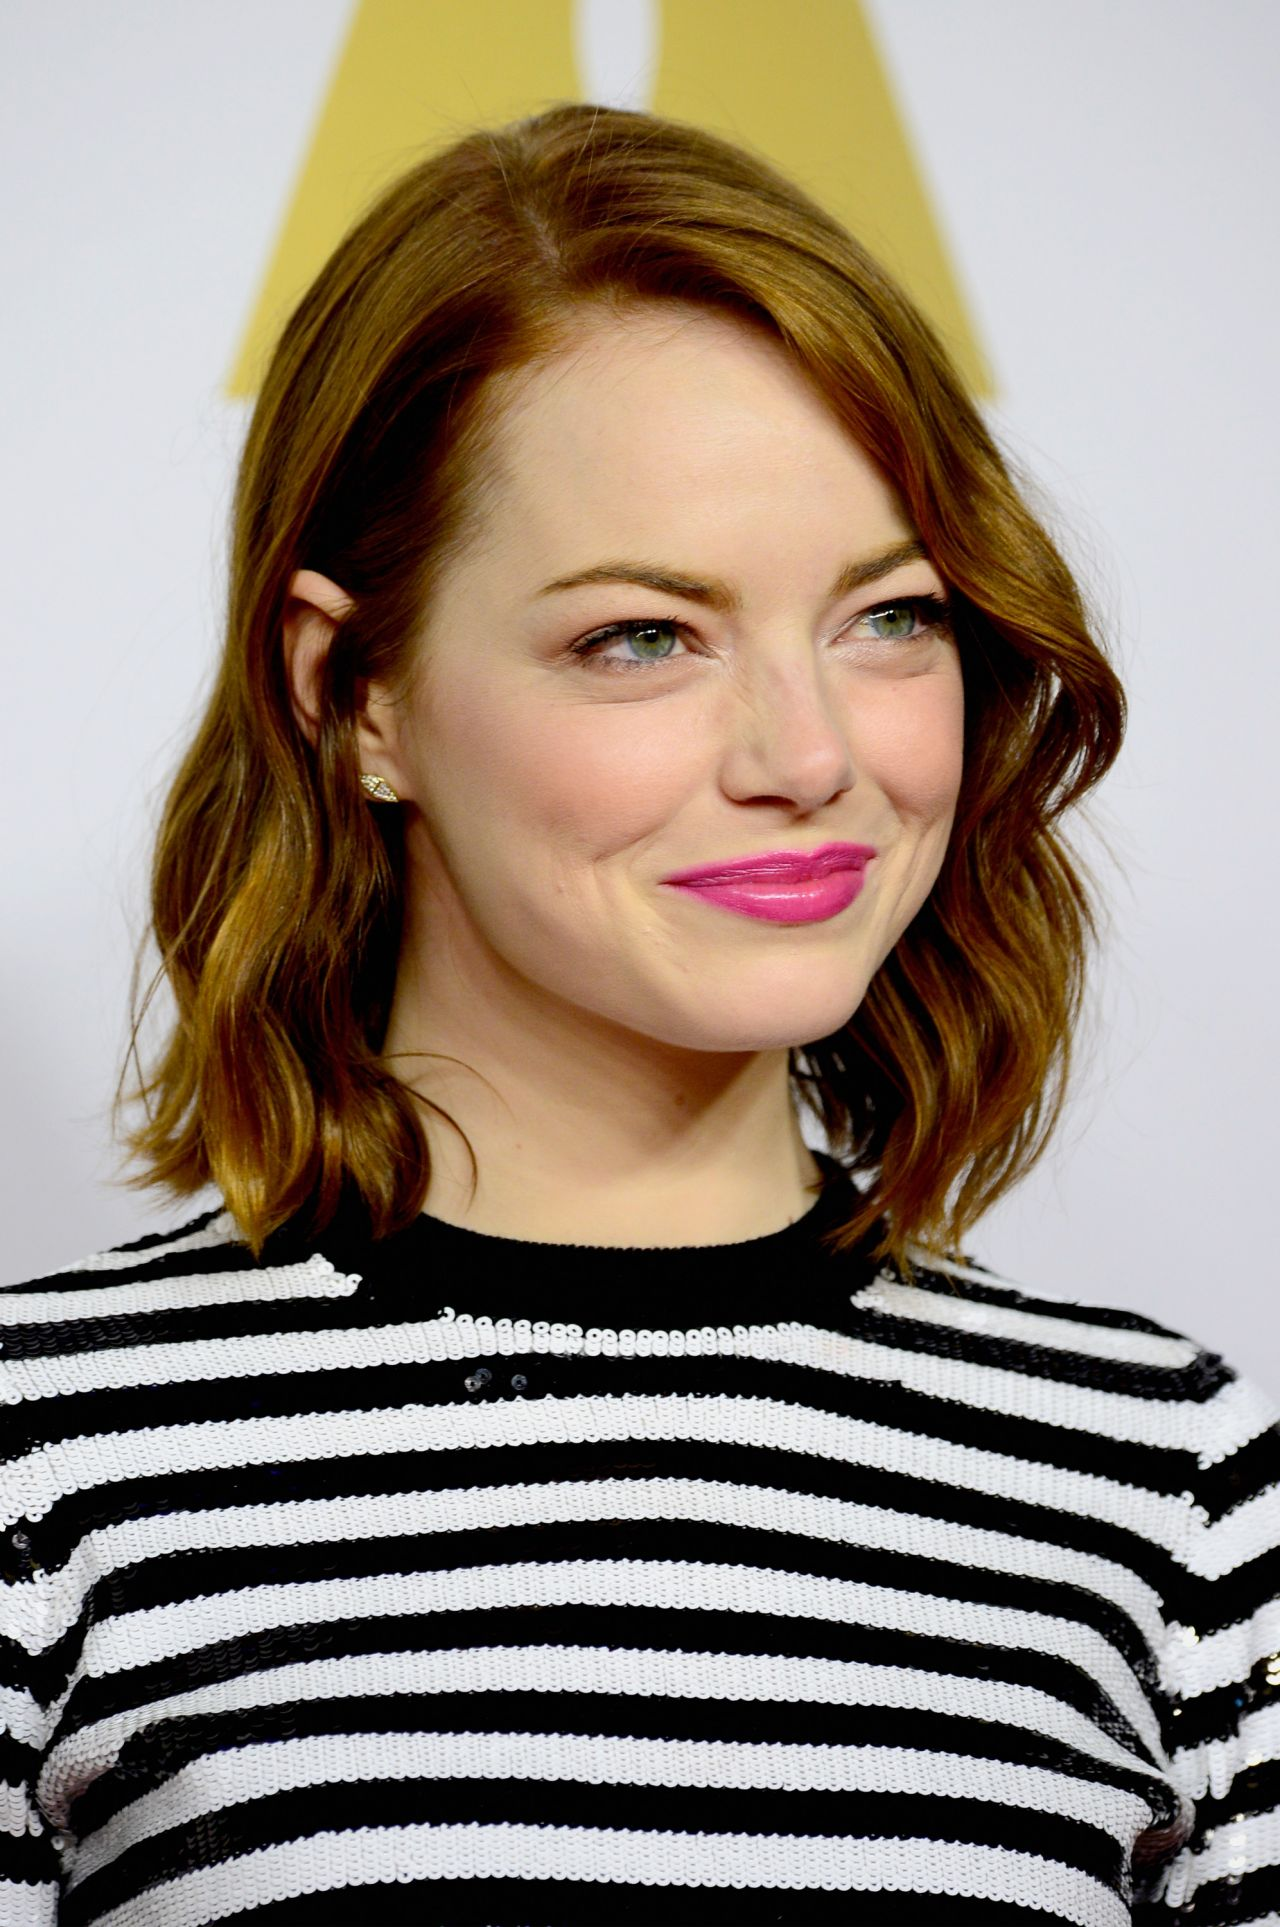 emma-stone-2015-academy-awards-nominee-luncheon-in-beverly-hills_10